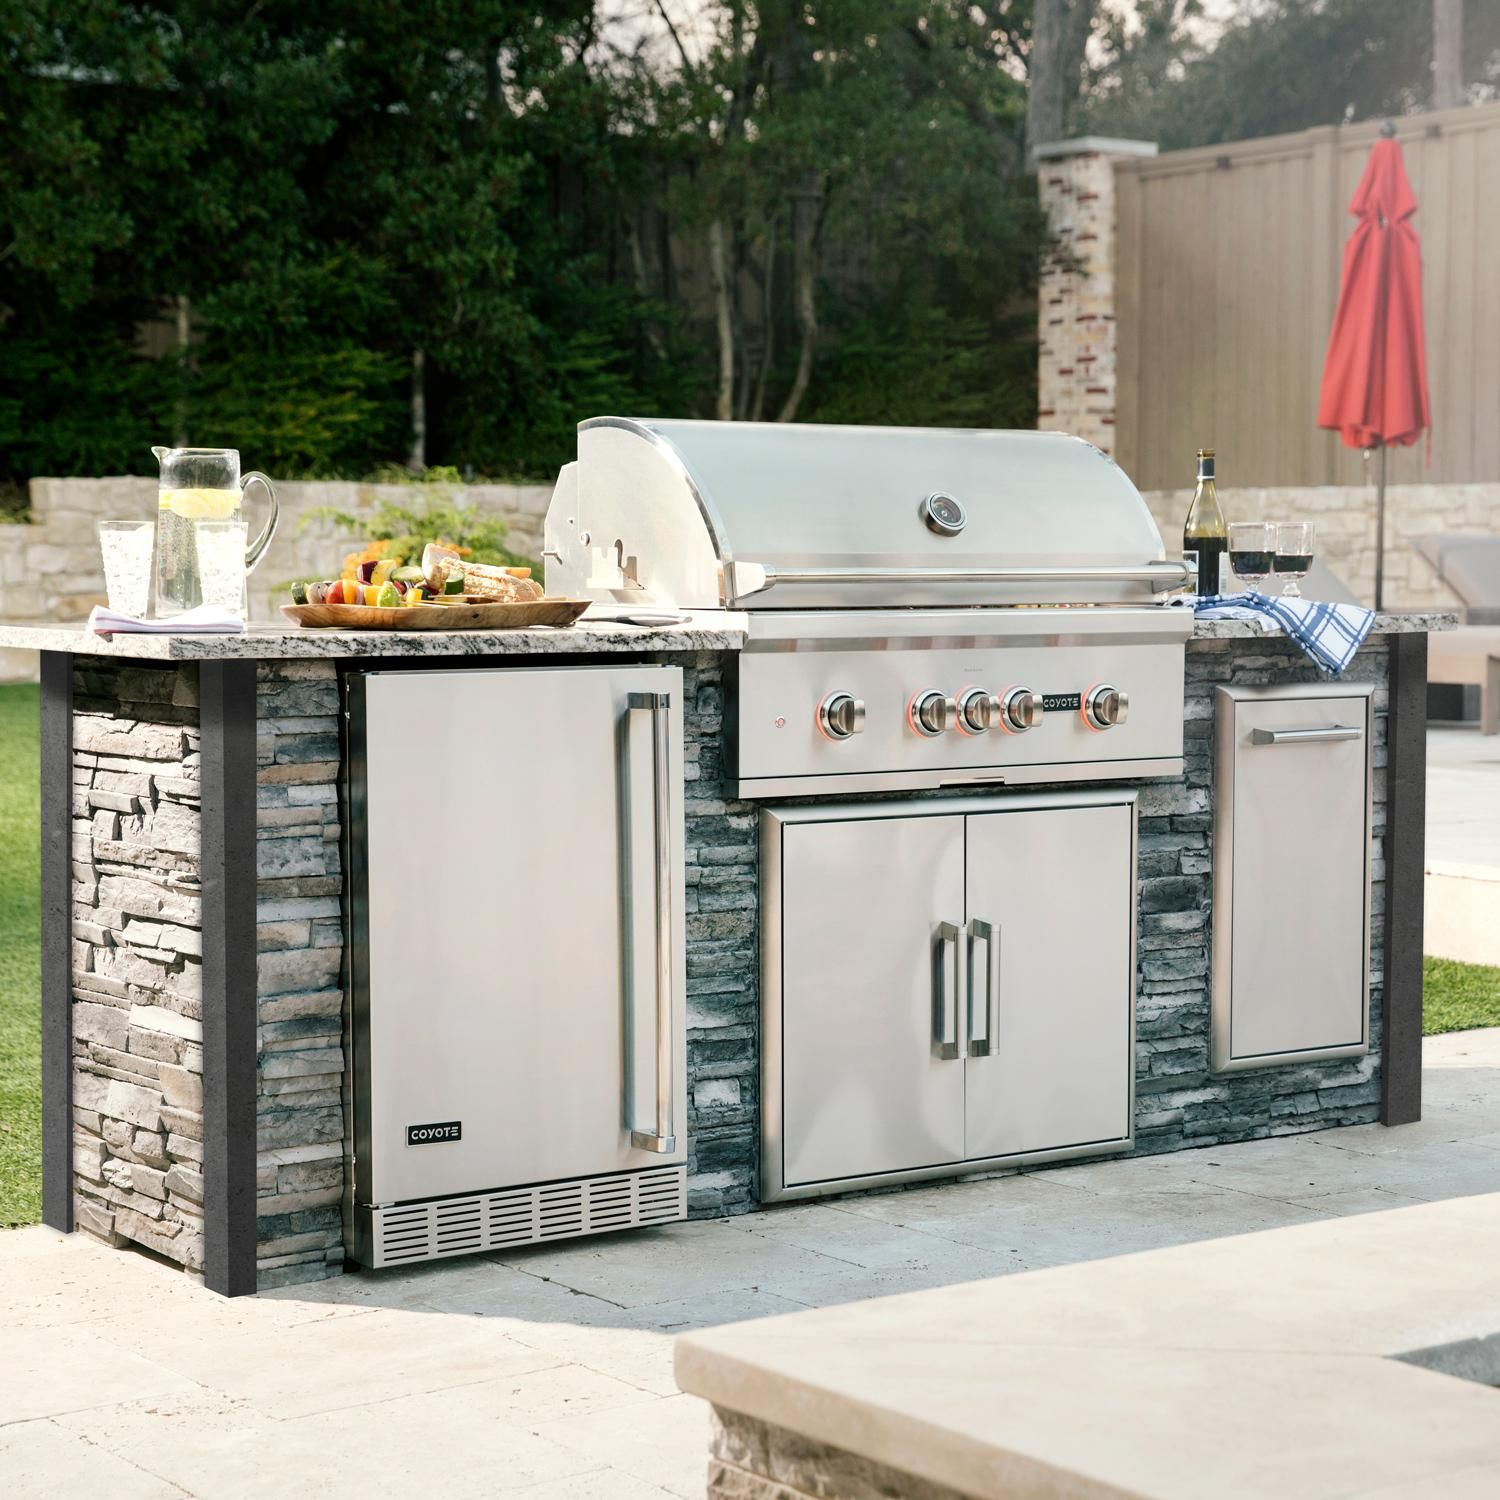 Coyote Ready To Assemble 8 Ft Outdoor Kitchen Island With 36 Inch S Series Natural Gas Grill Ships As Propane With Conversion Fittings Stacked Stone Stone G Outdoor Kitchen Island Outdoor Kitchen Bbq Grill Island